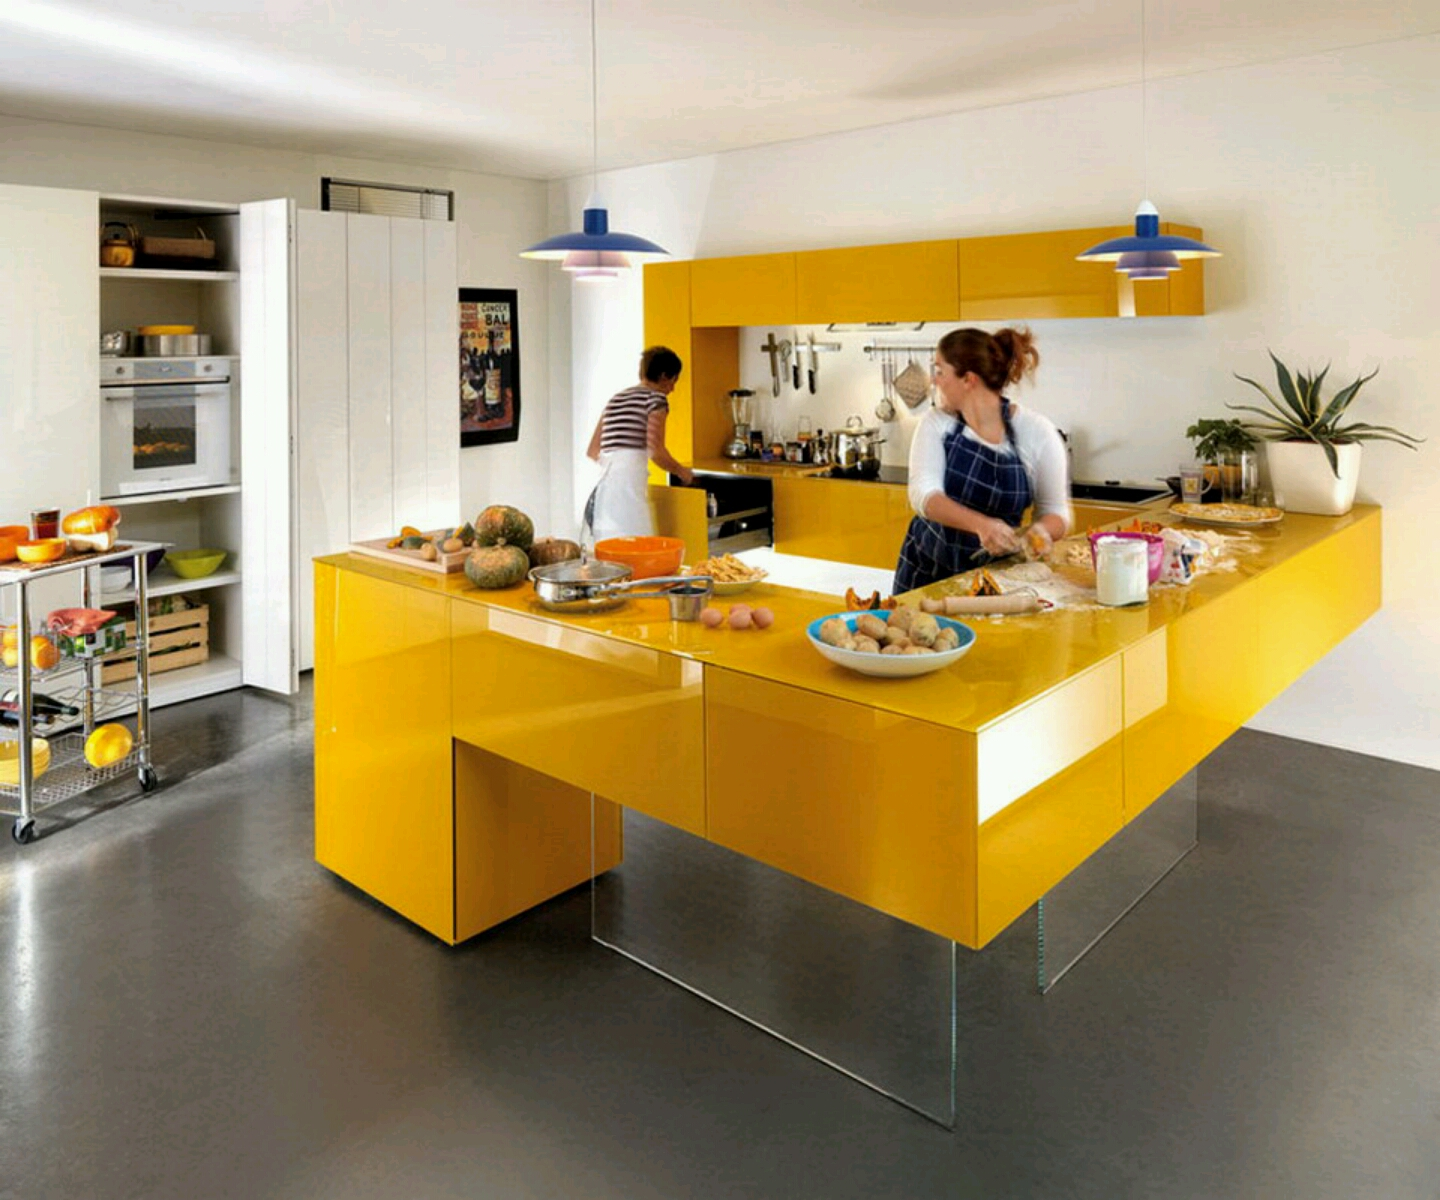 Modern kitchen cabinets designs ideas furniture gallery for Modern kitchen layout